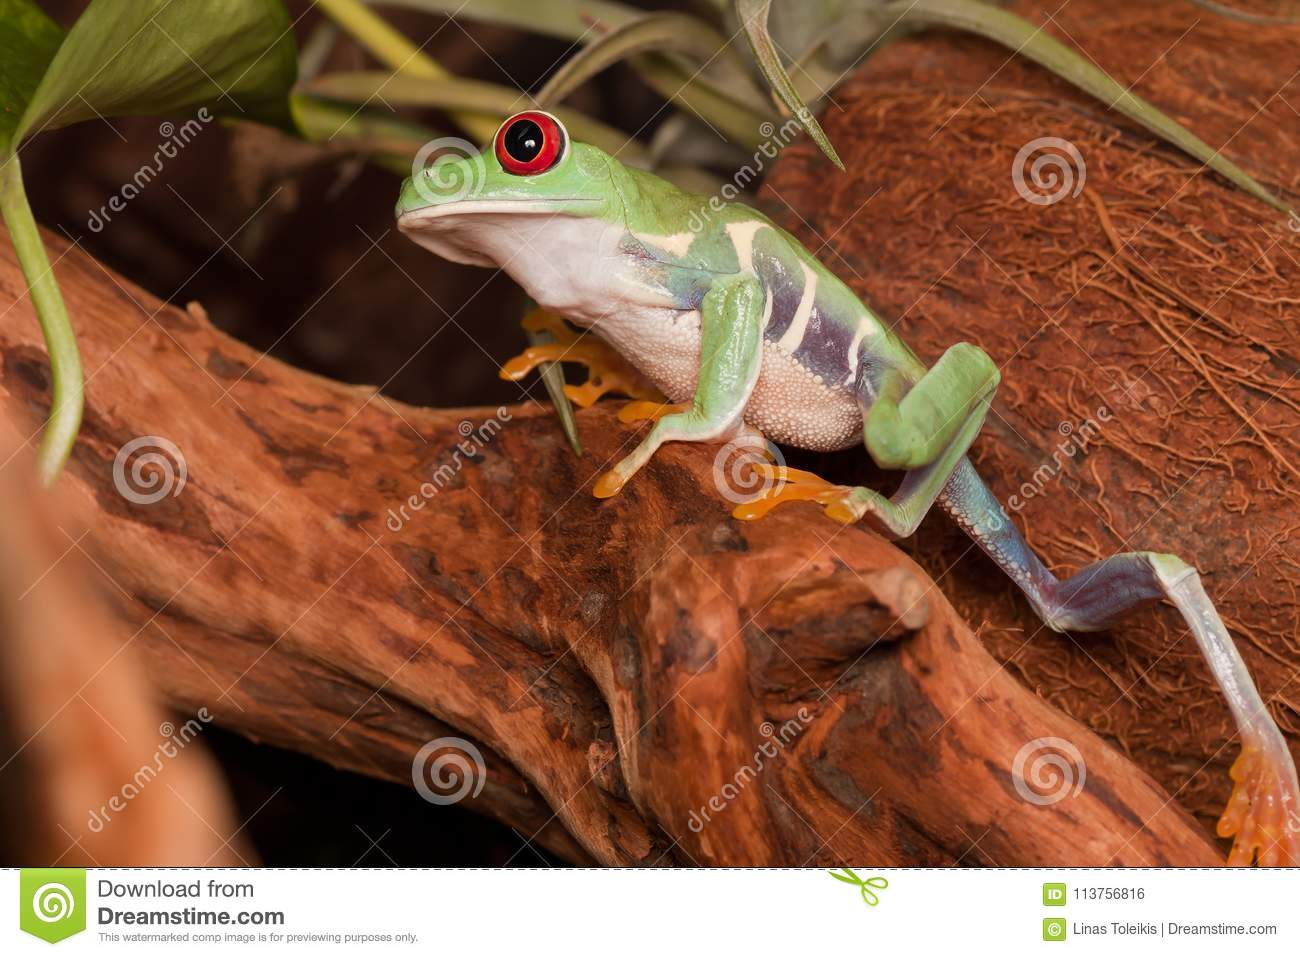 Red eyed tree frog climbs up